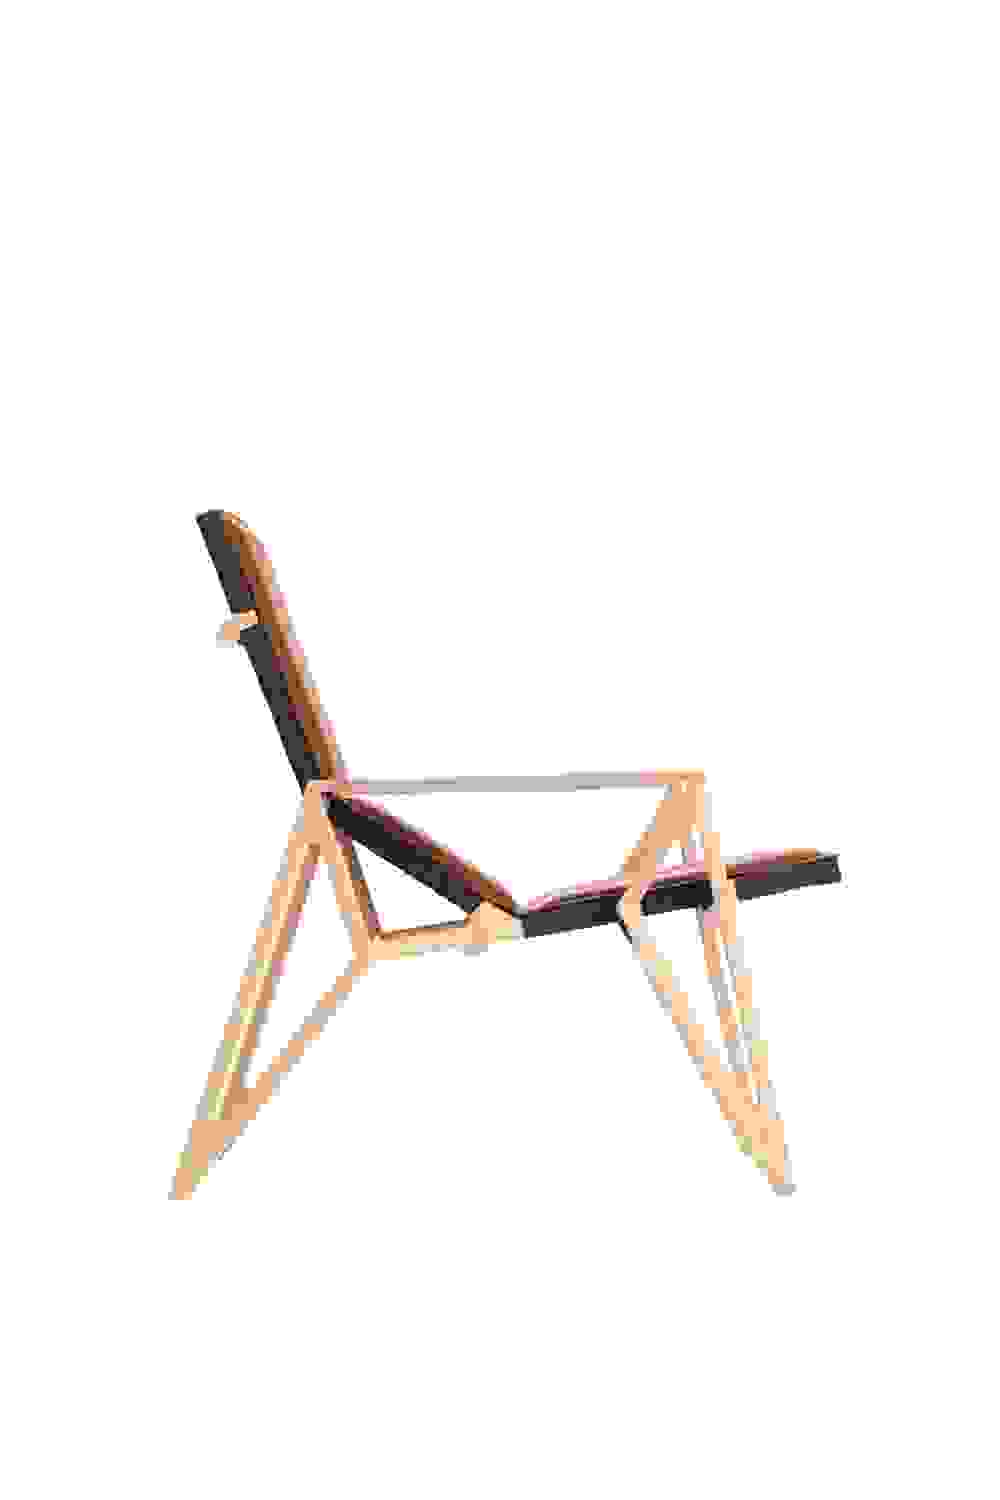 capdell-iconica-chair-04.jpg